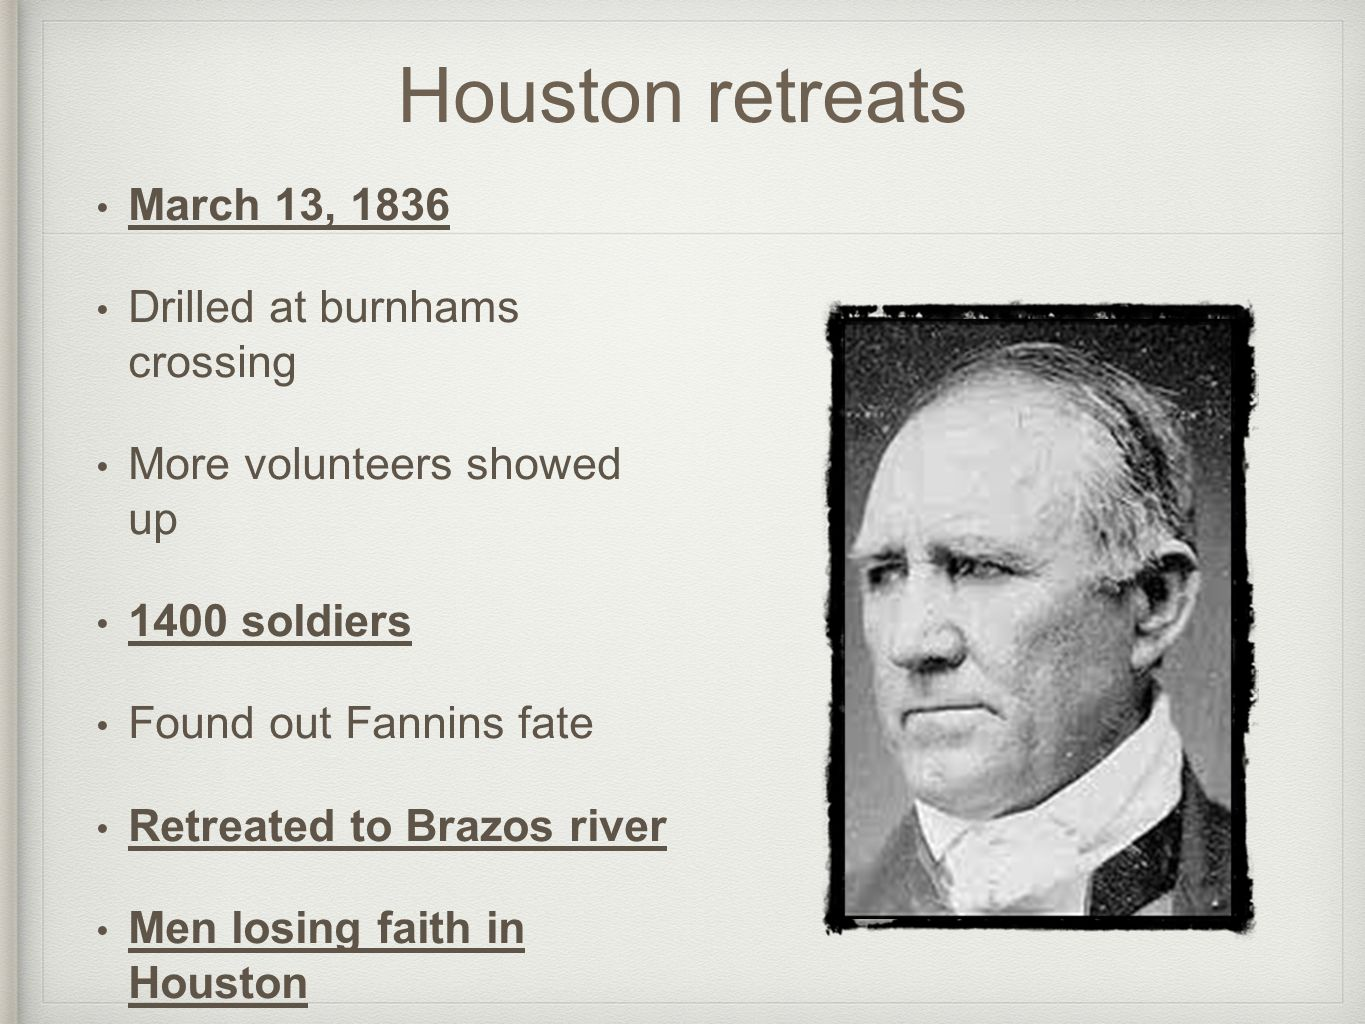 Houston retreats March 13, 1836 Drilled at burnhams crossing More volunteers showed up 1400 soldiers Found out Fannins fate Retreated to Brazos river Men losing faith in Houston